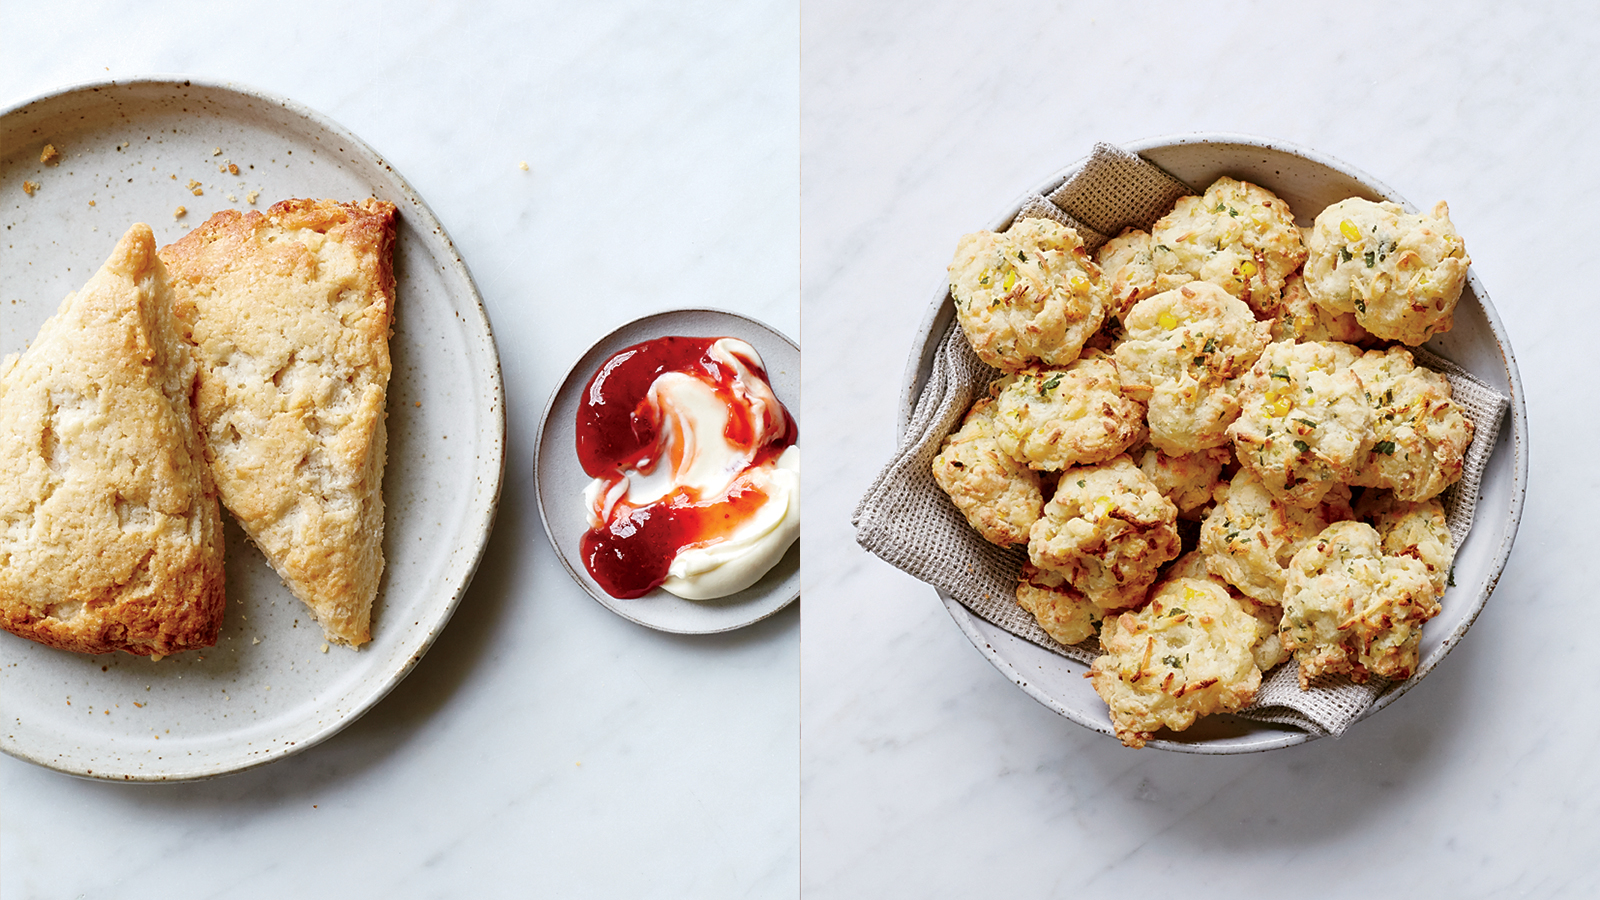 5 New Ways to Make Biscuits